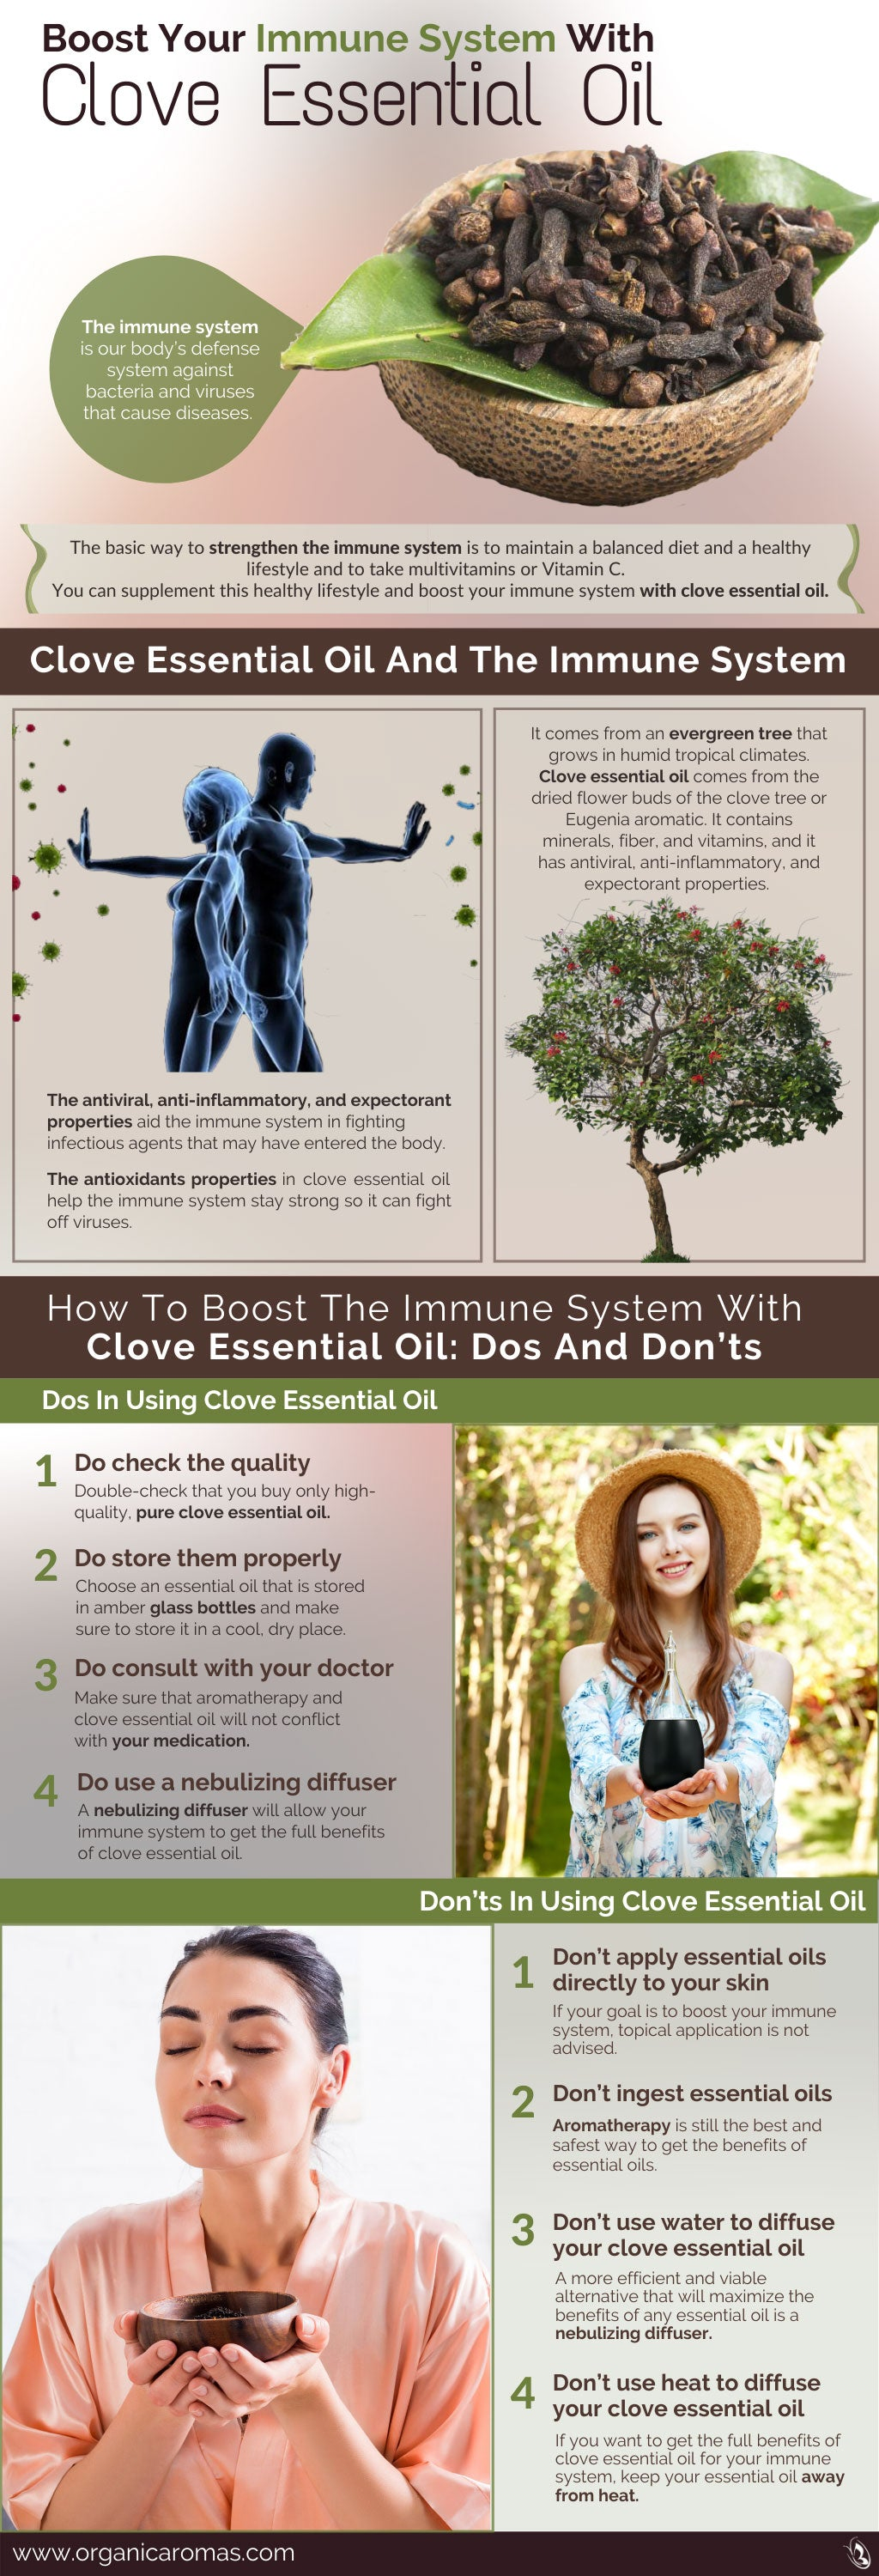 Boost Your Immune System With Clove Essential Oil